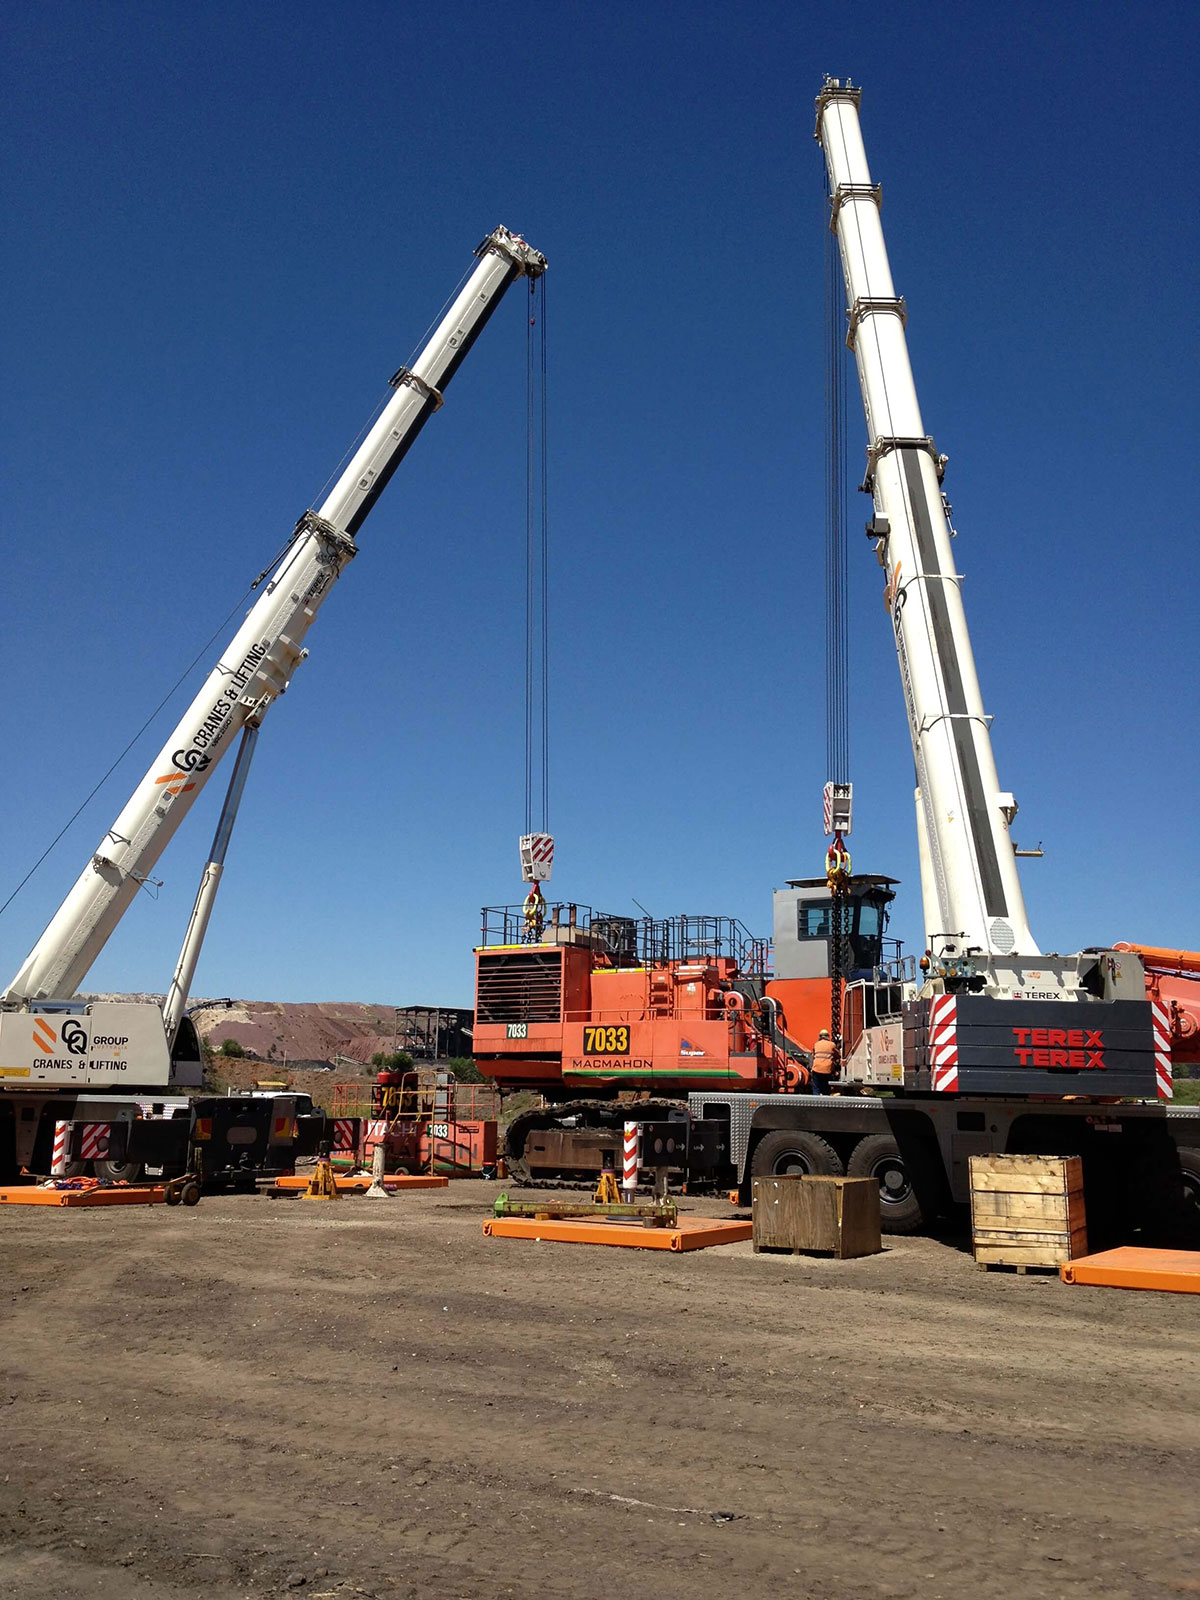 Why are cranes used in pile driving